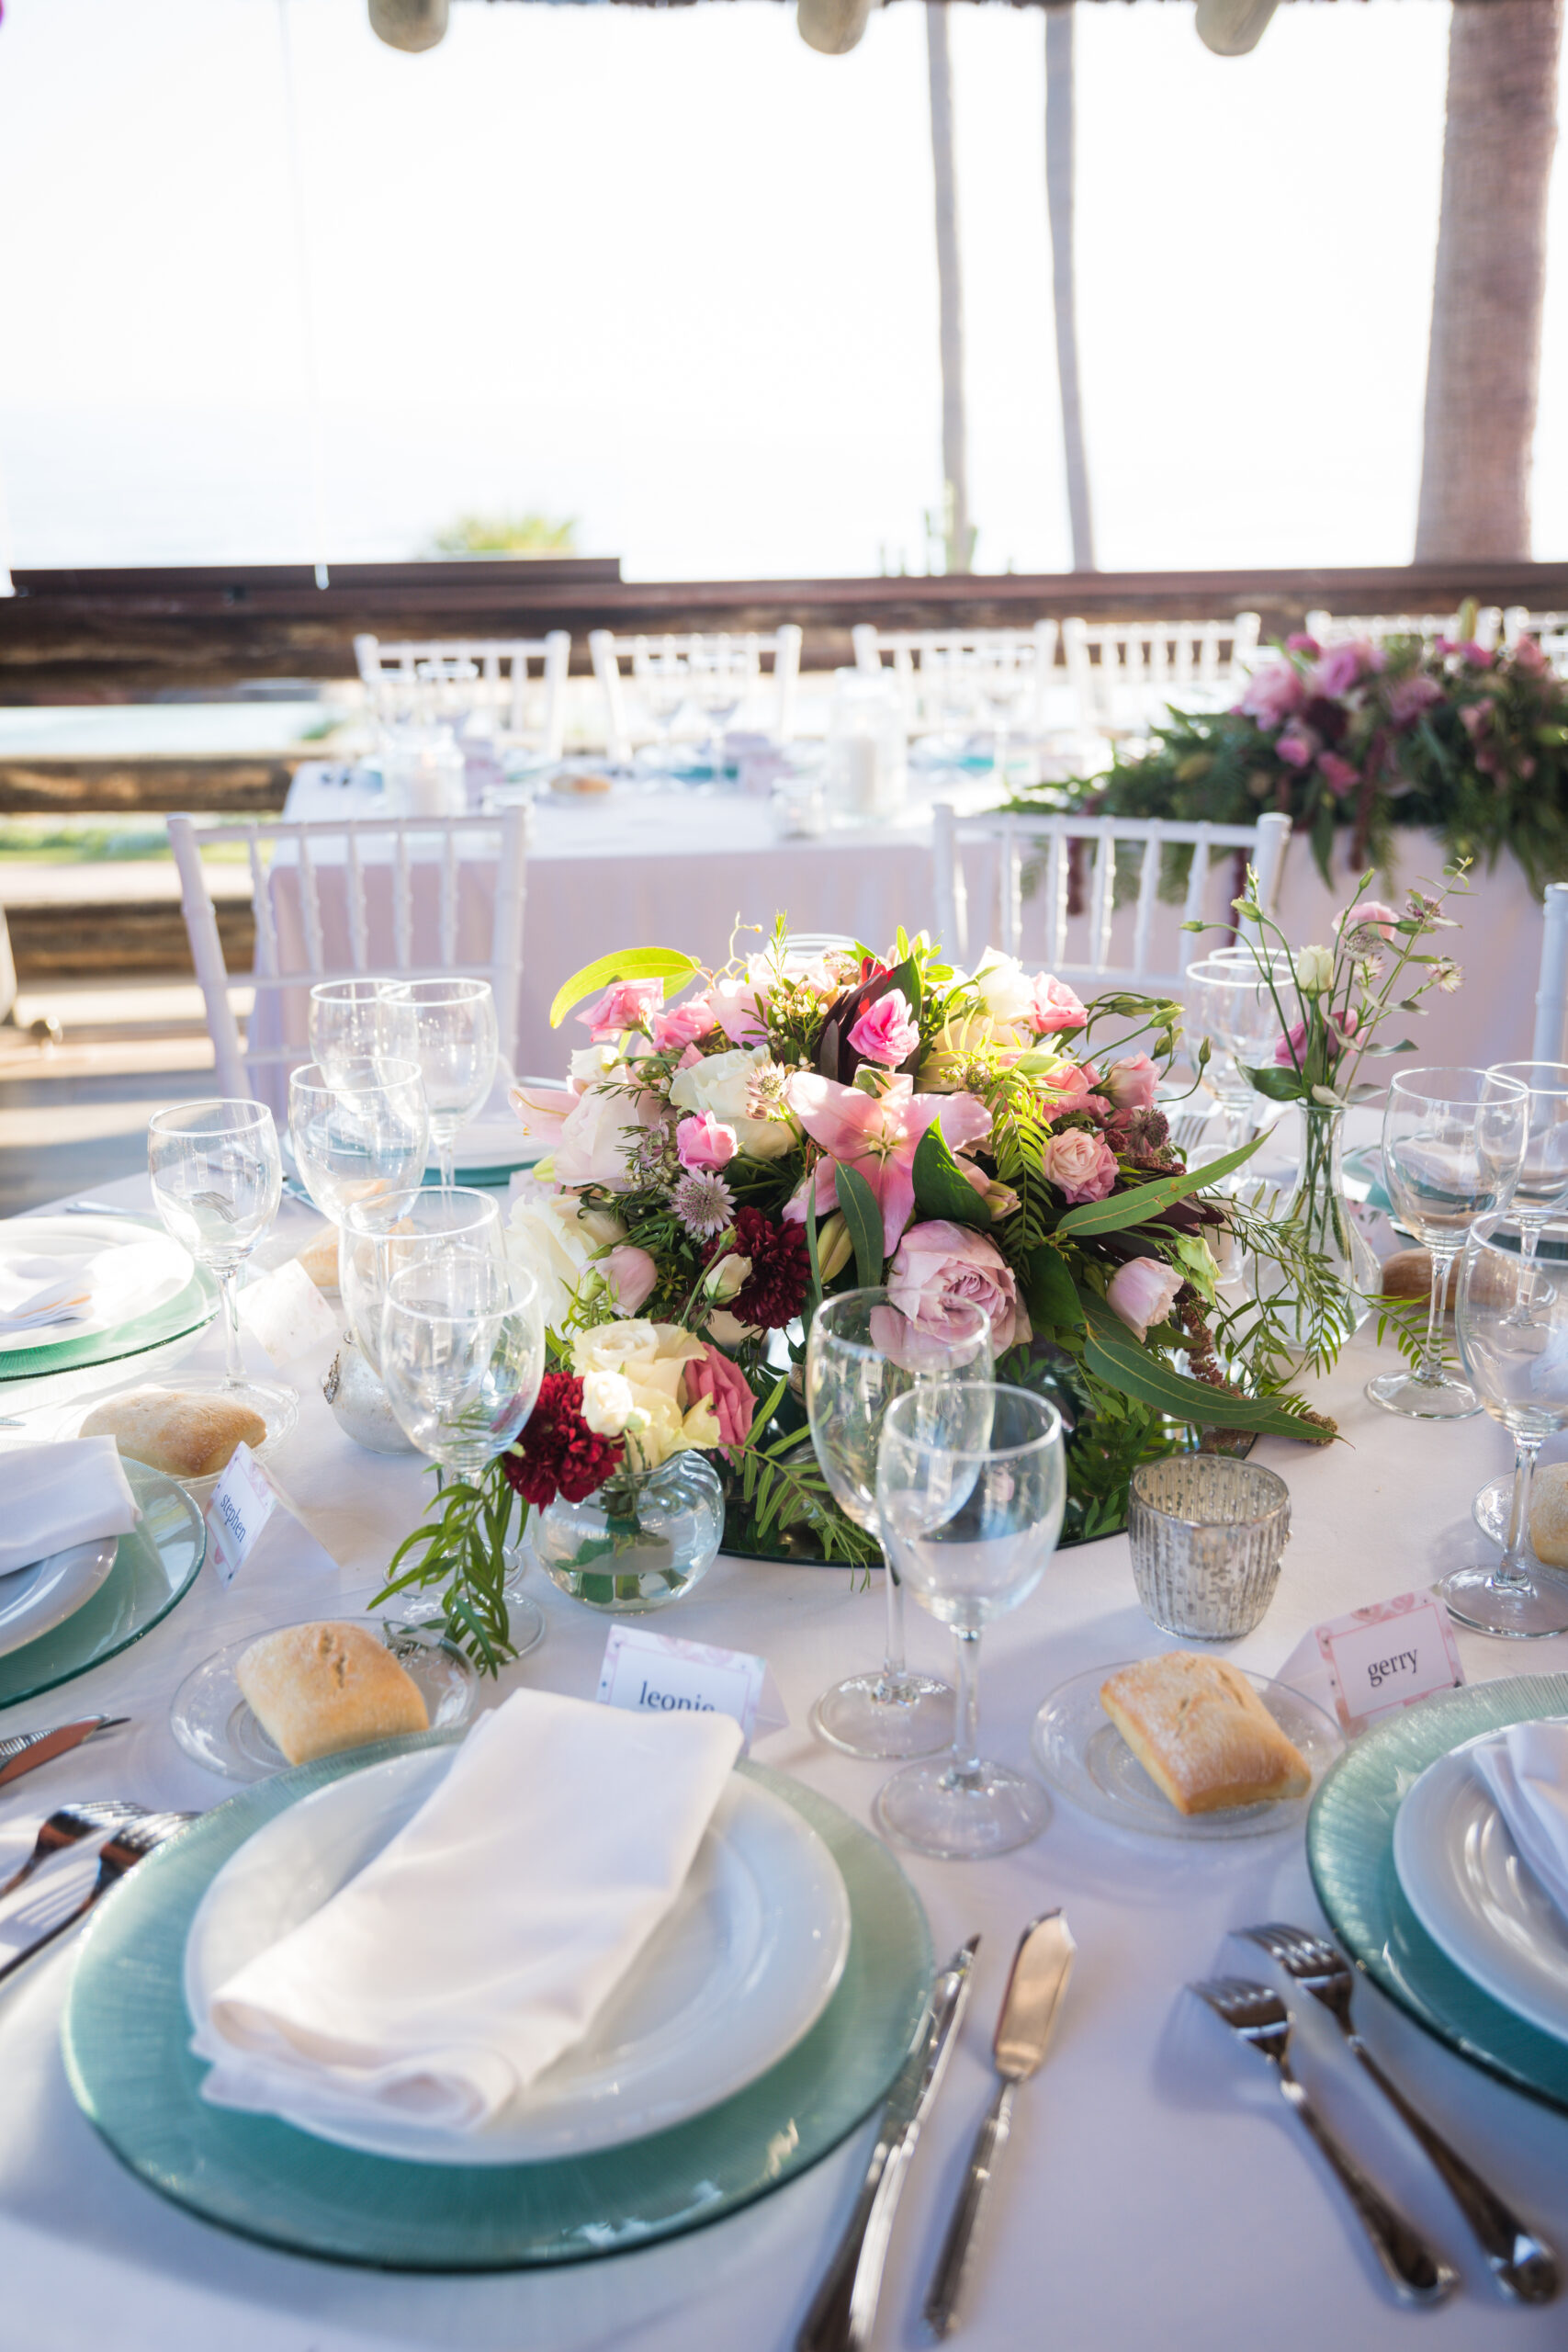 Stunning table decorations for the wedding meal - Rebecca Davidson Photography